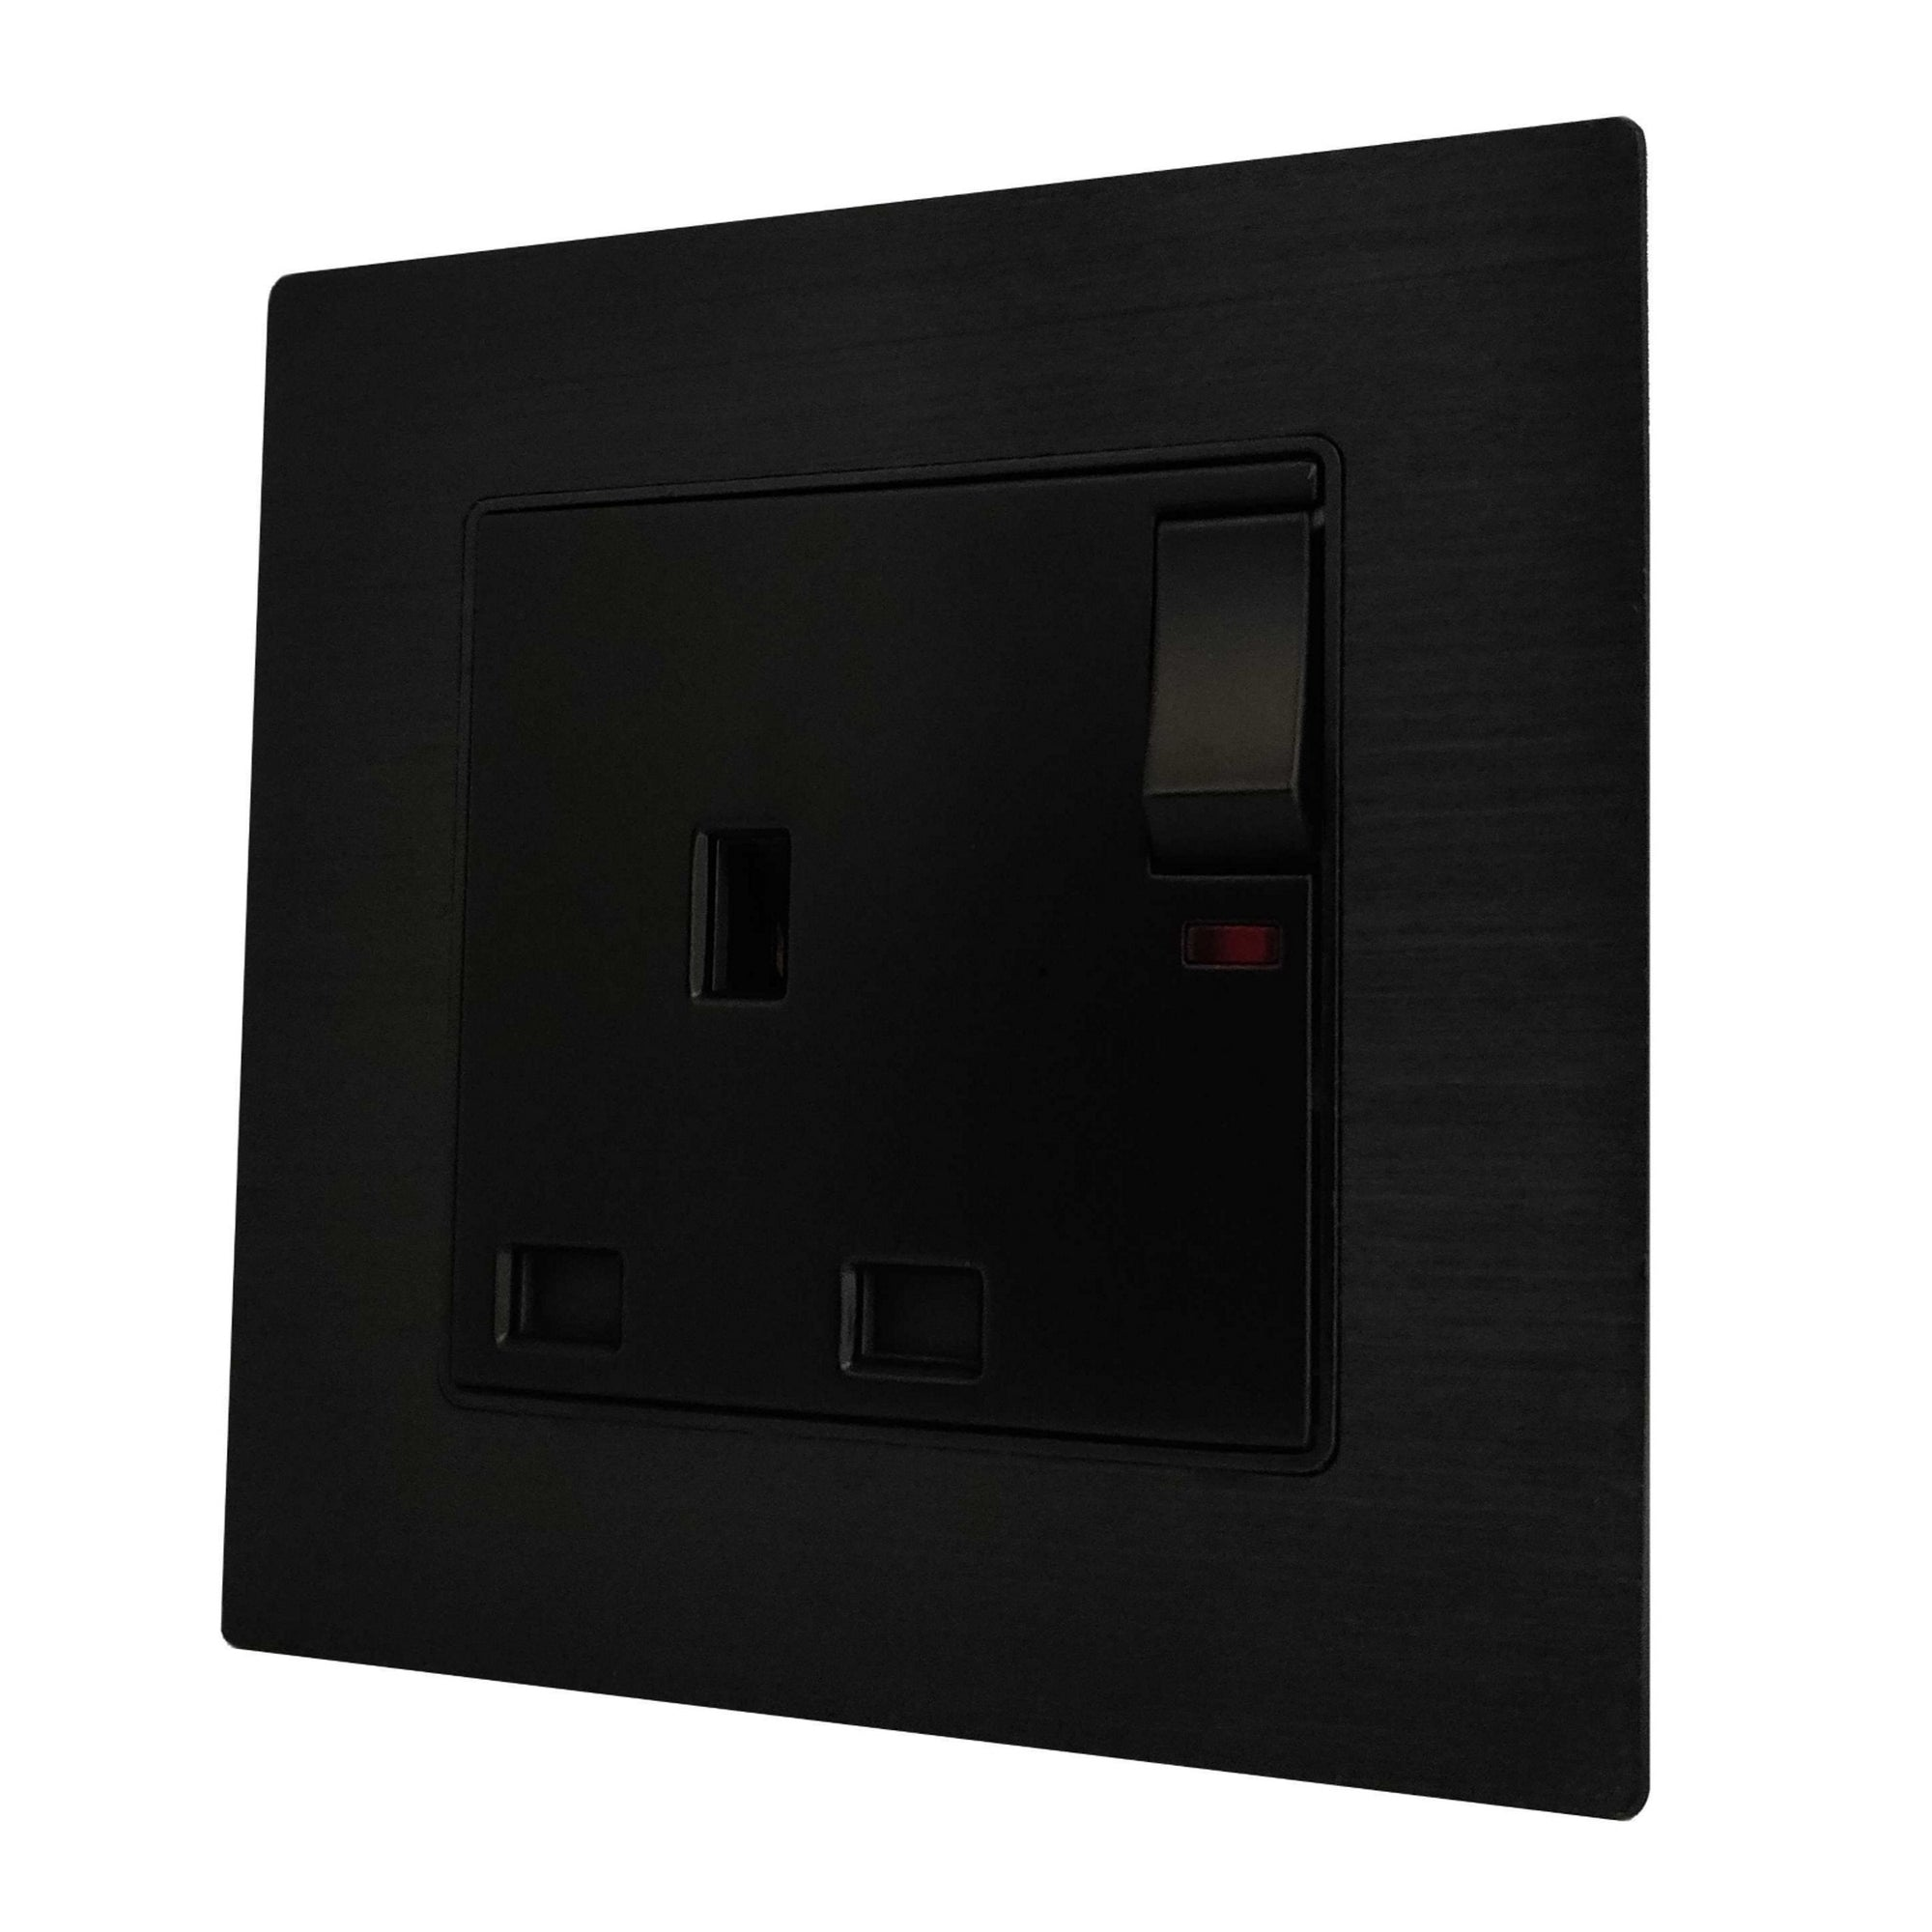 Single UK 13A 3-Pin AC Wall Power Socket in Black Brushed Alum Frame & Black Centre